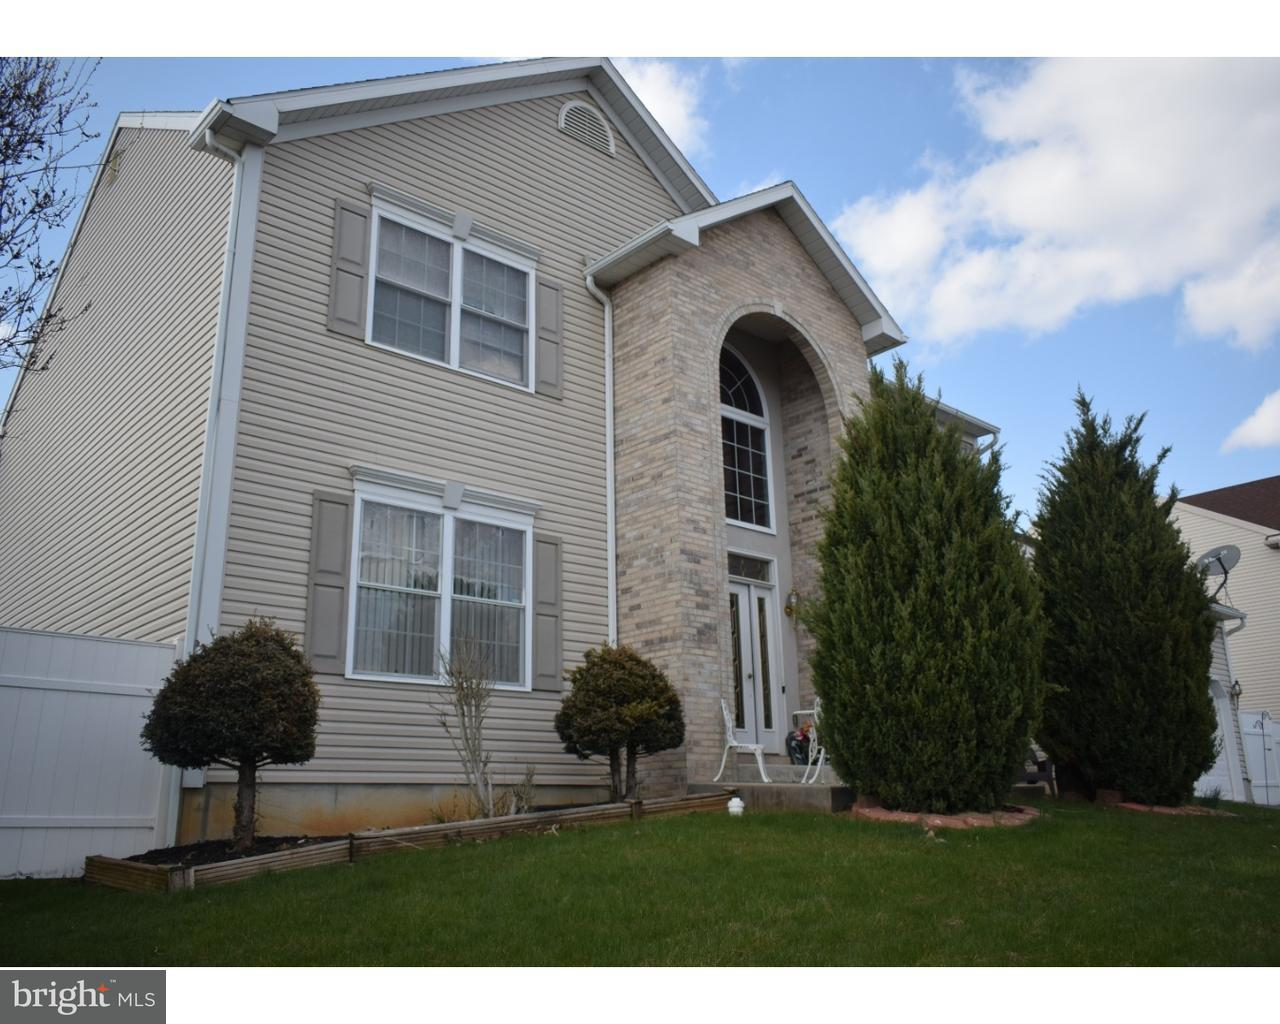 47 VERSAILLES CT, READING - Listed at $309,000, READING